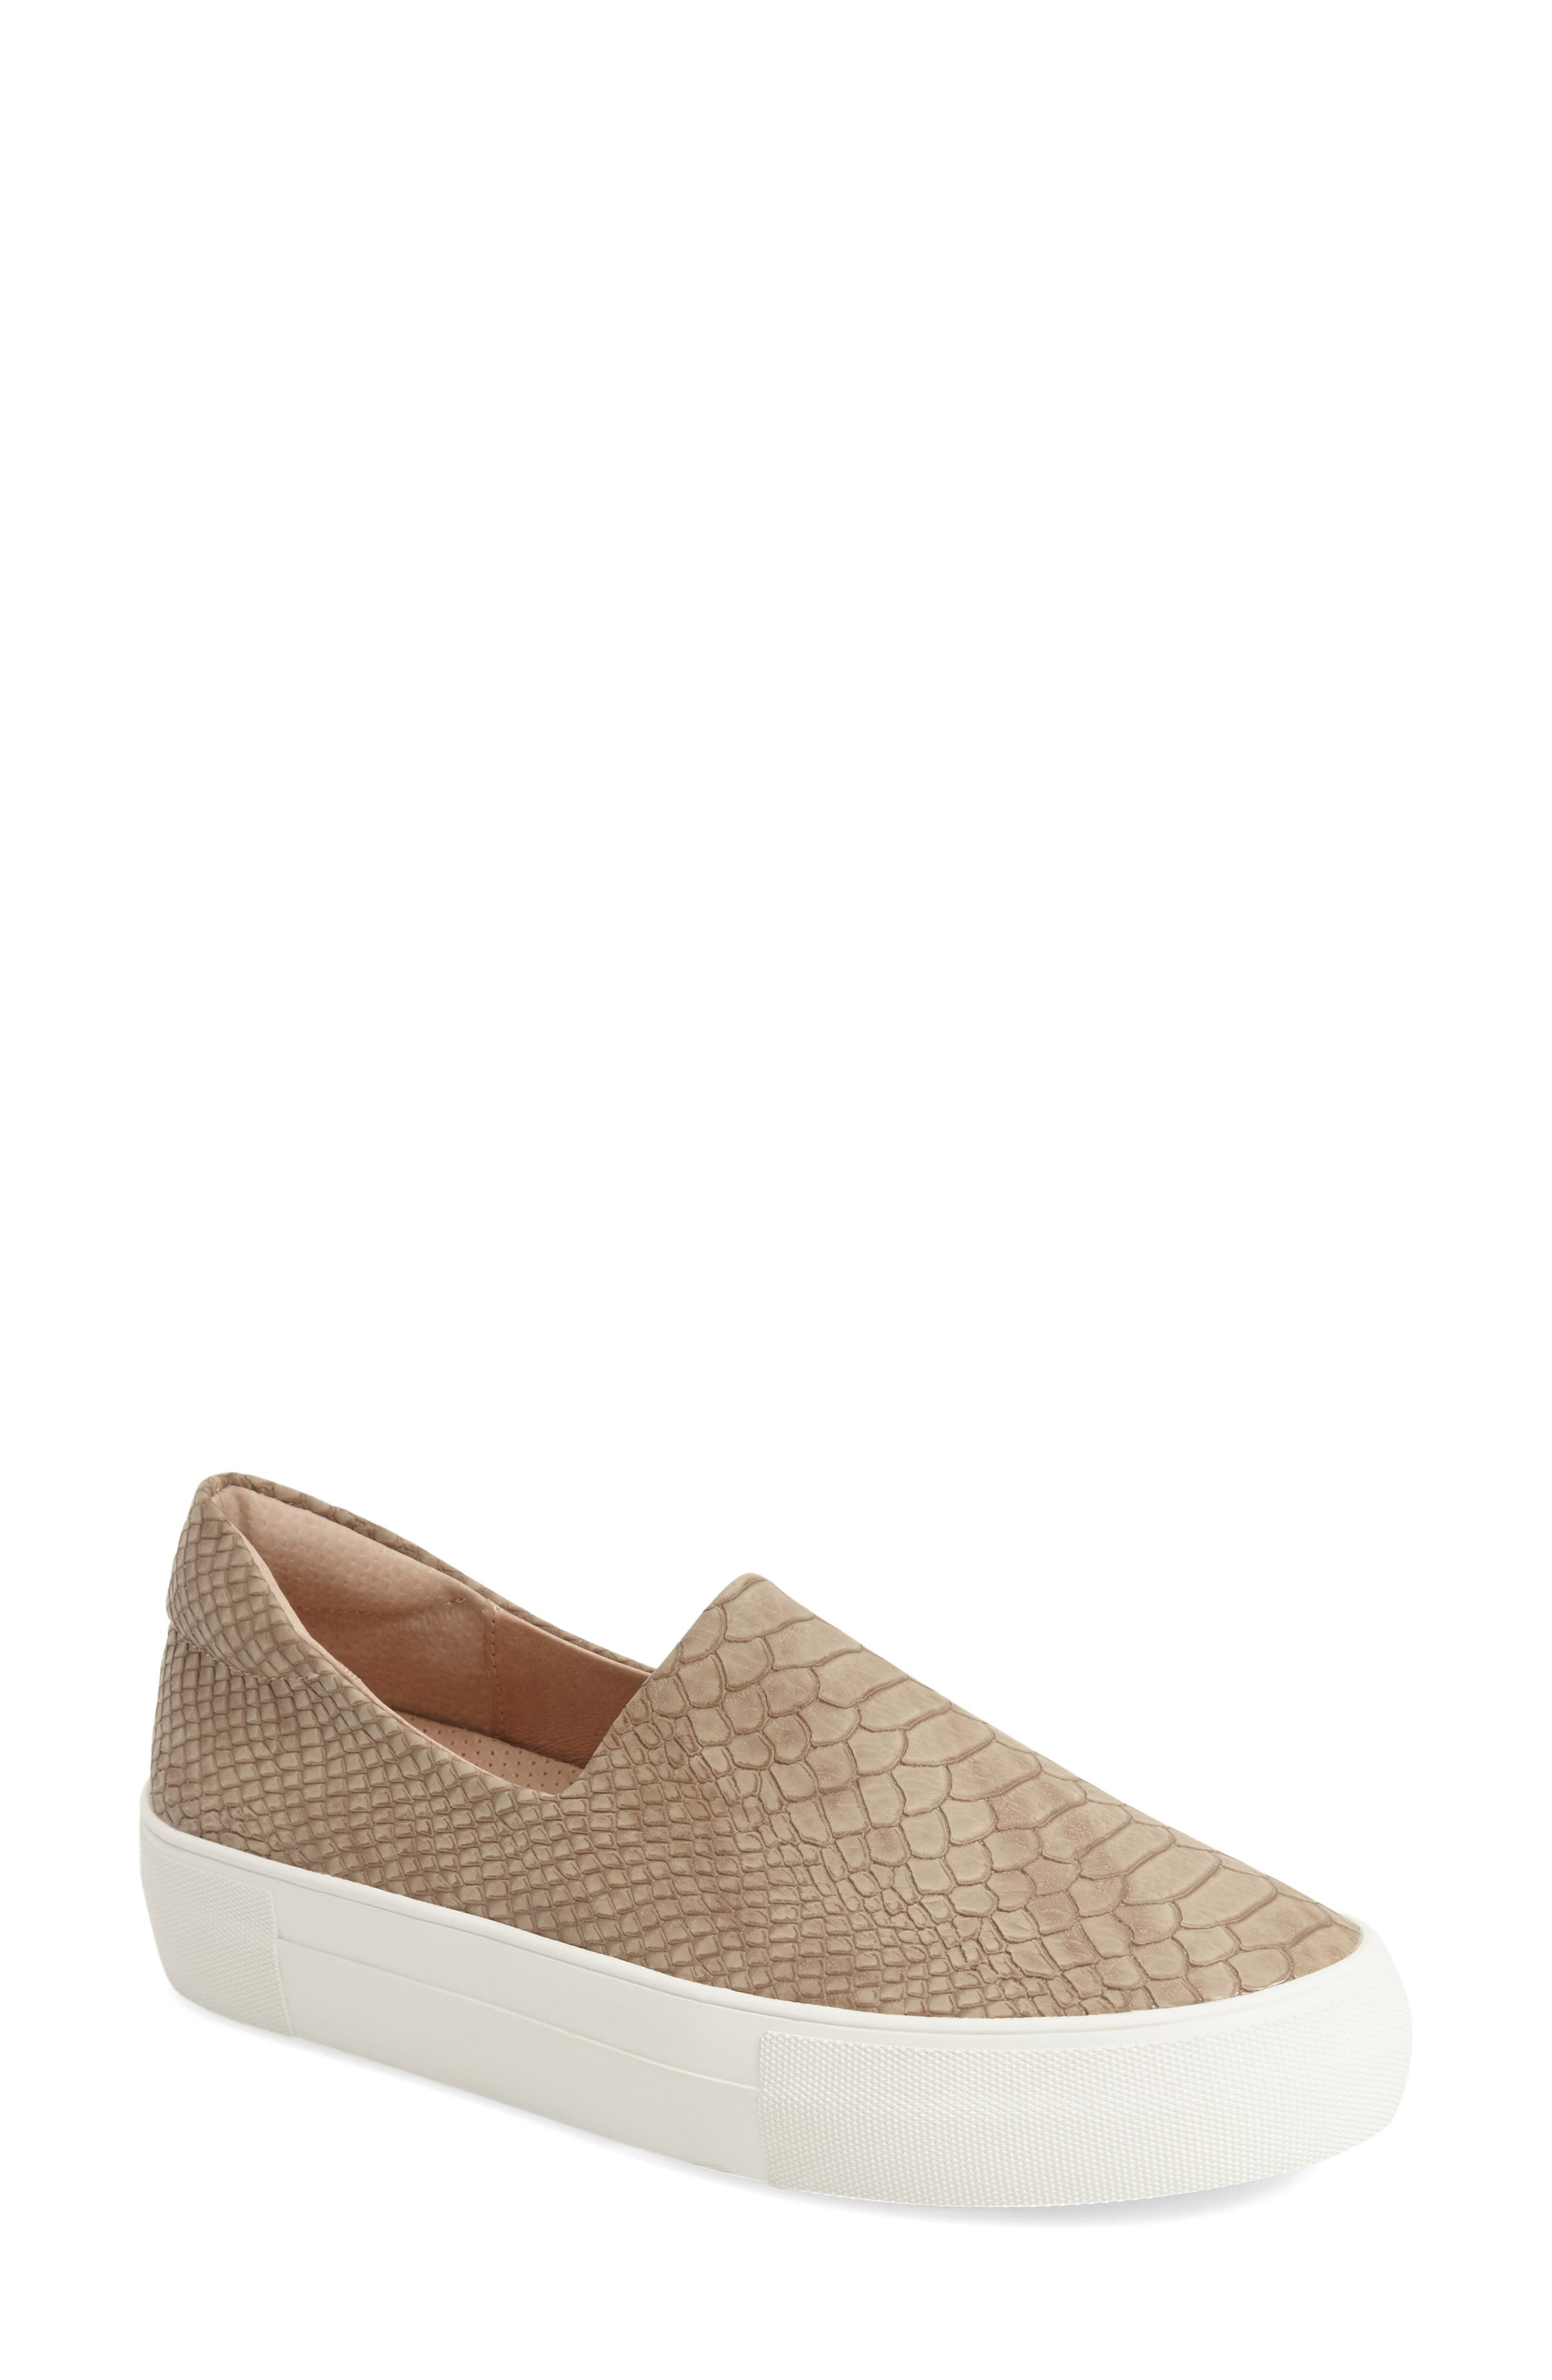 'Ariana' Platform Sneaker,                             Alternate thumbnail 5, color,                             TAUPE EMBOSSED LUX